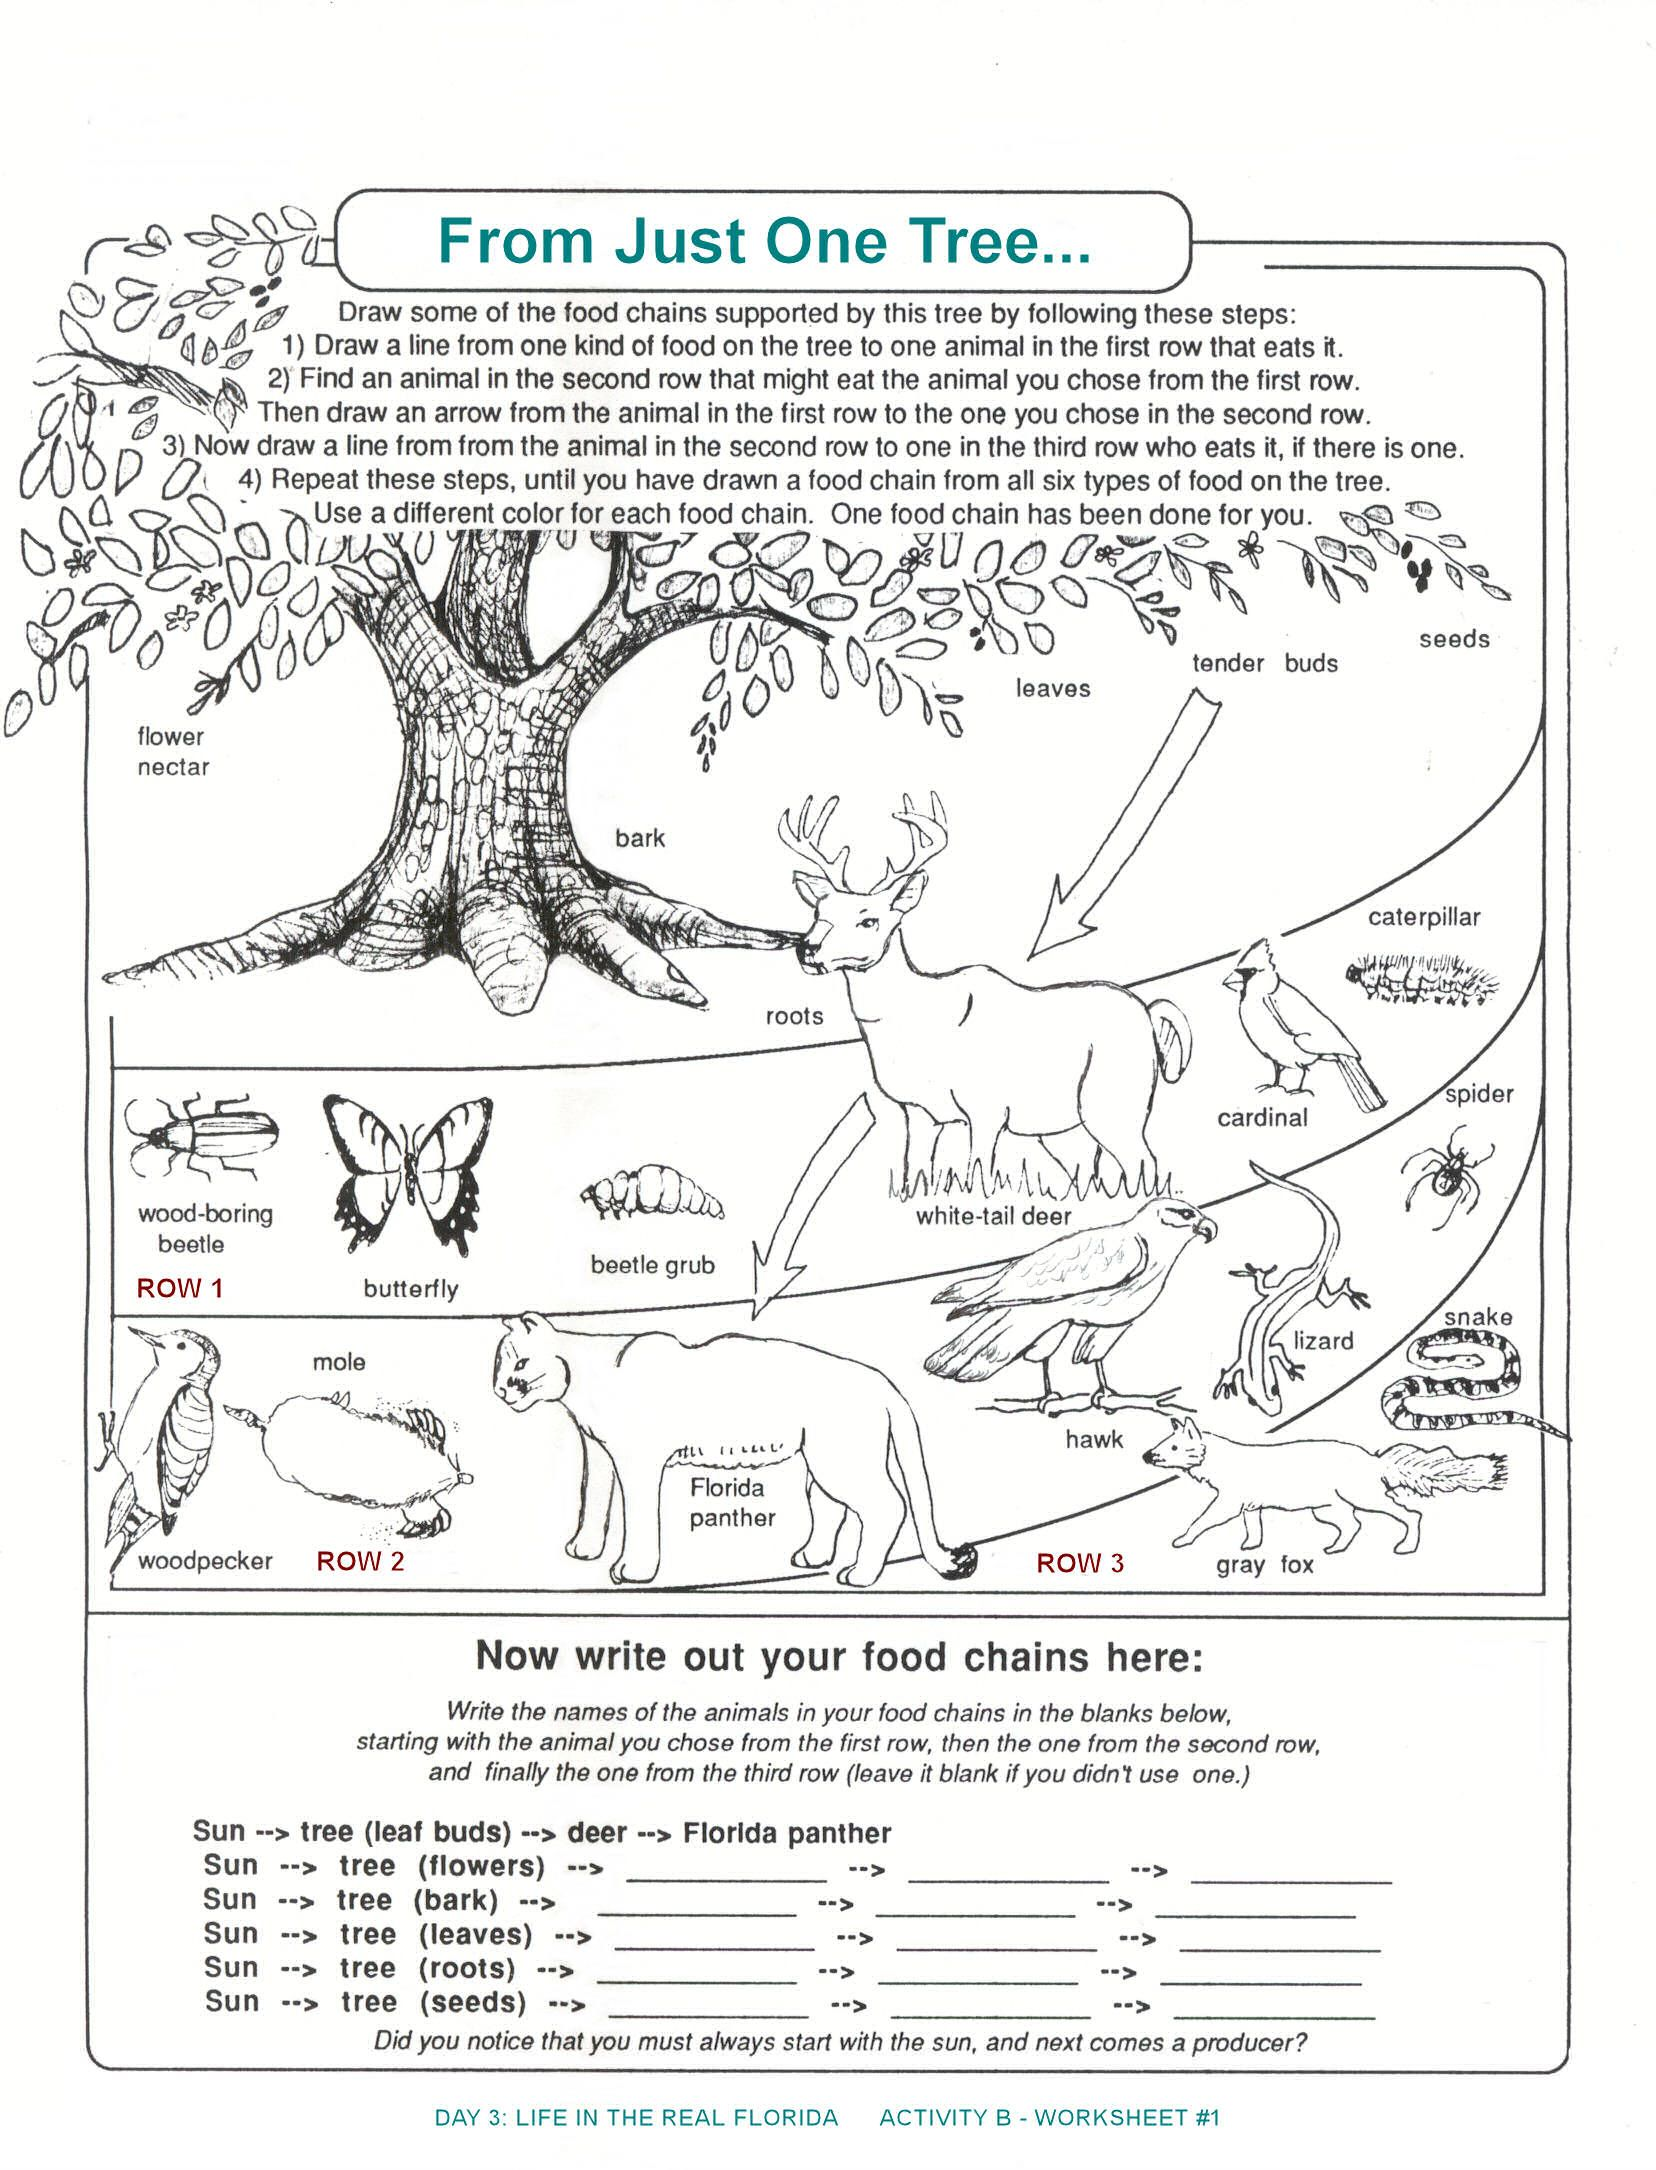 Decomposers Worksheets For Kids Archbold Biological